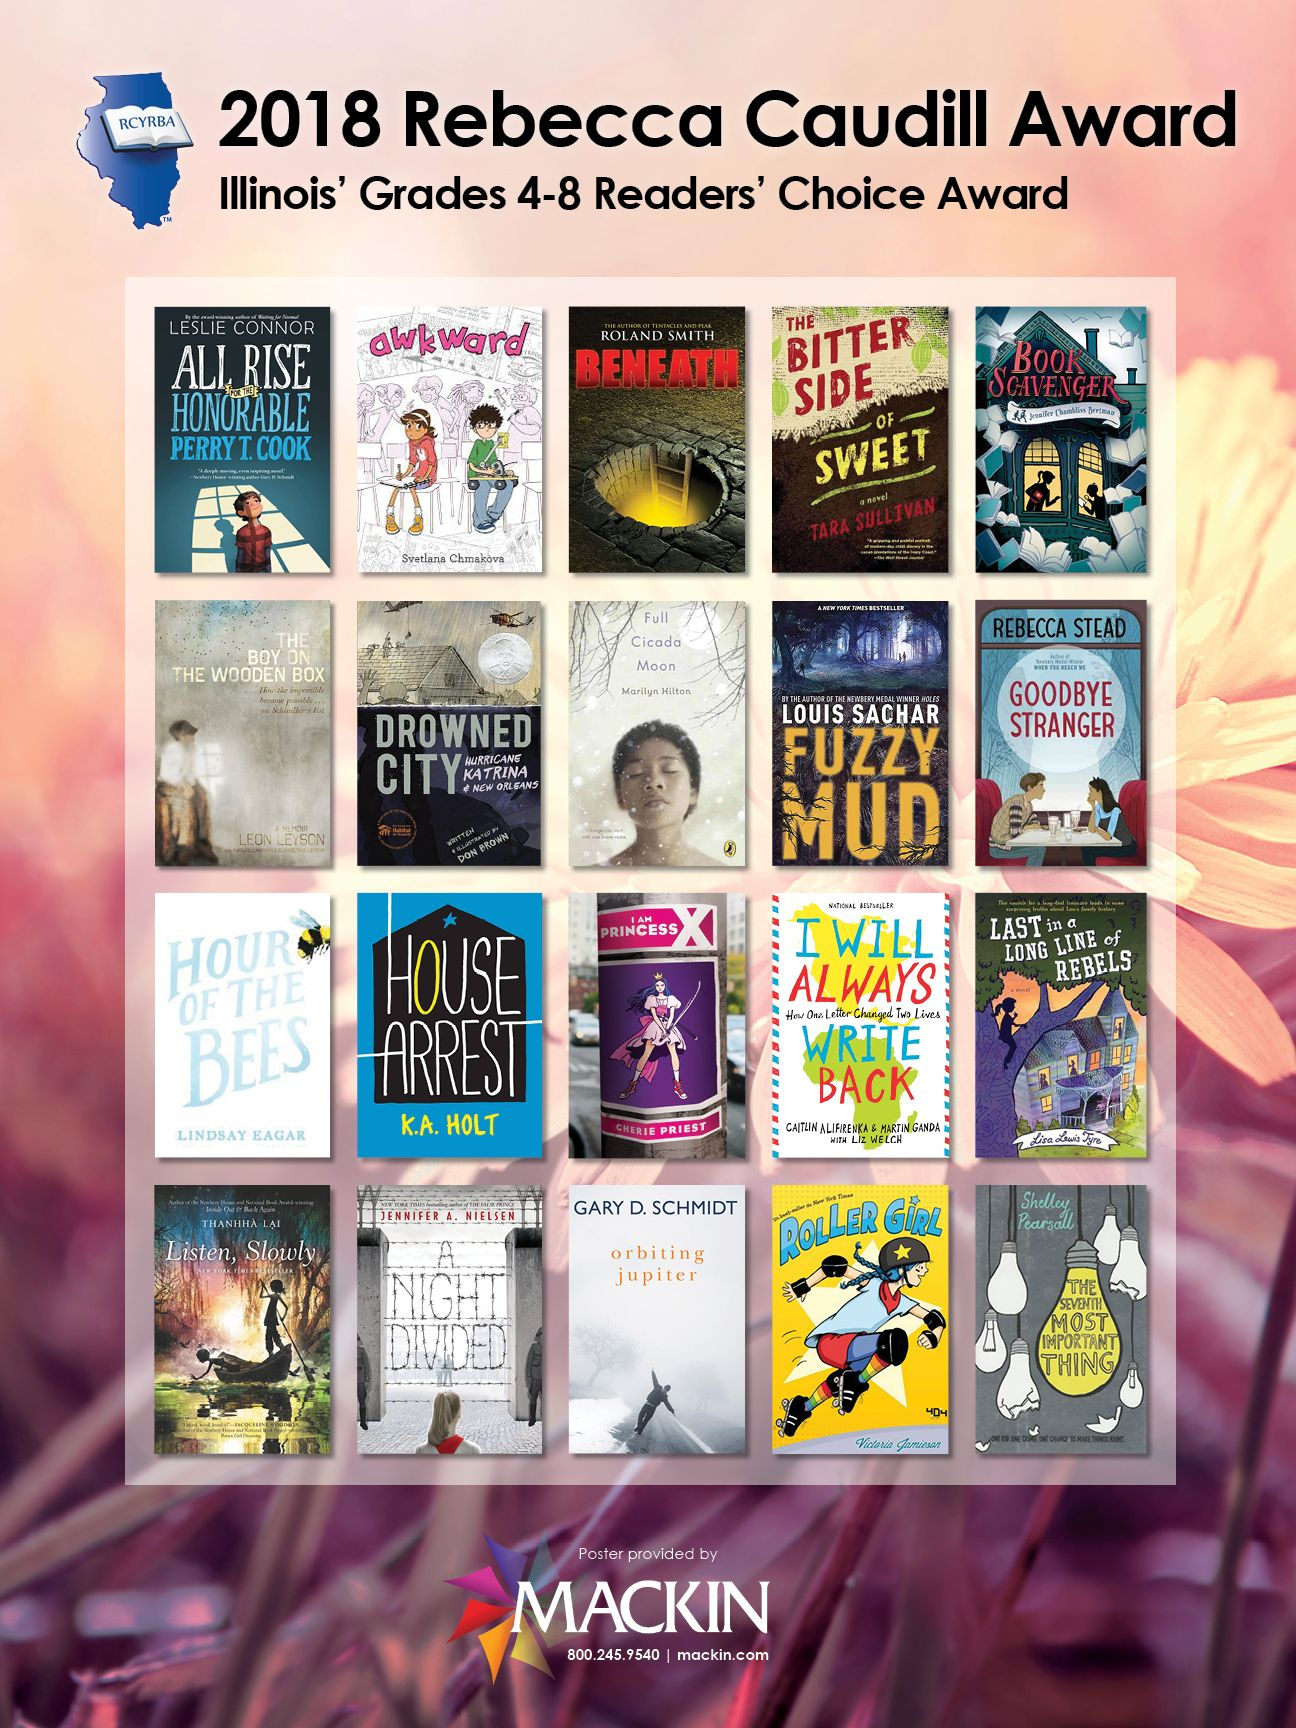 2018 Rebecca Caudill Award Reading Is Not Just For Kids Books